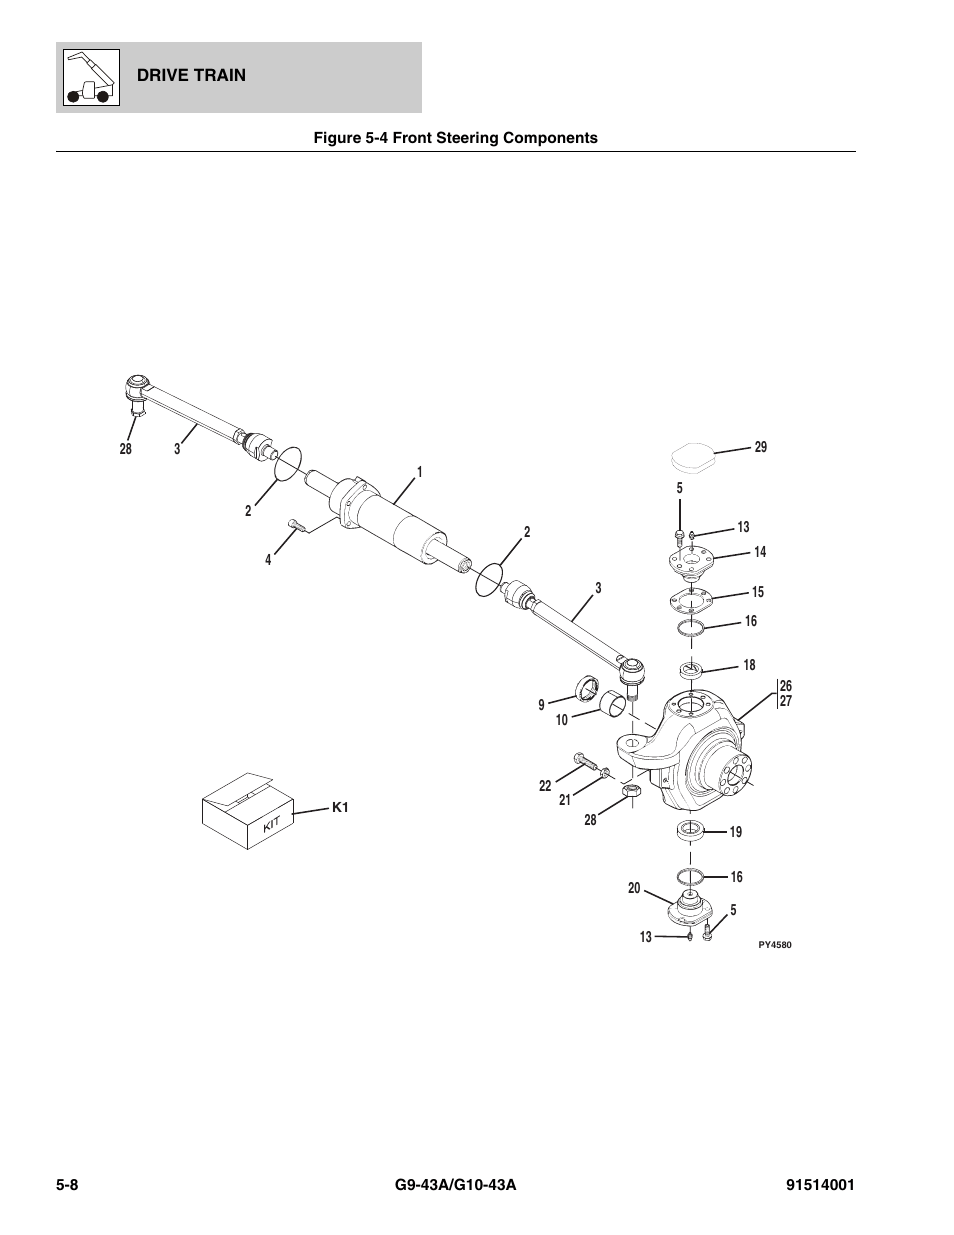 Figure 5-4 front steering components, Front steering